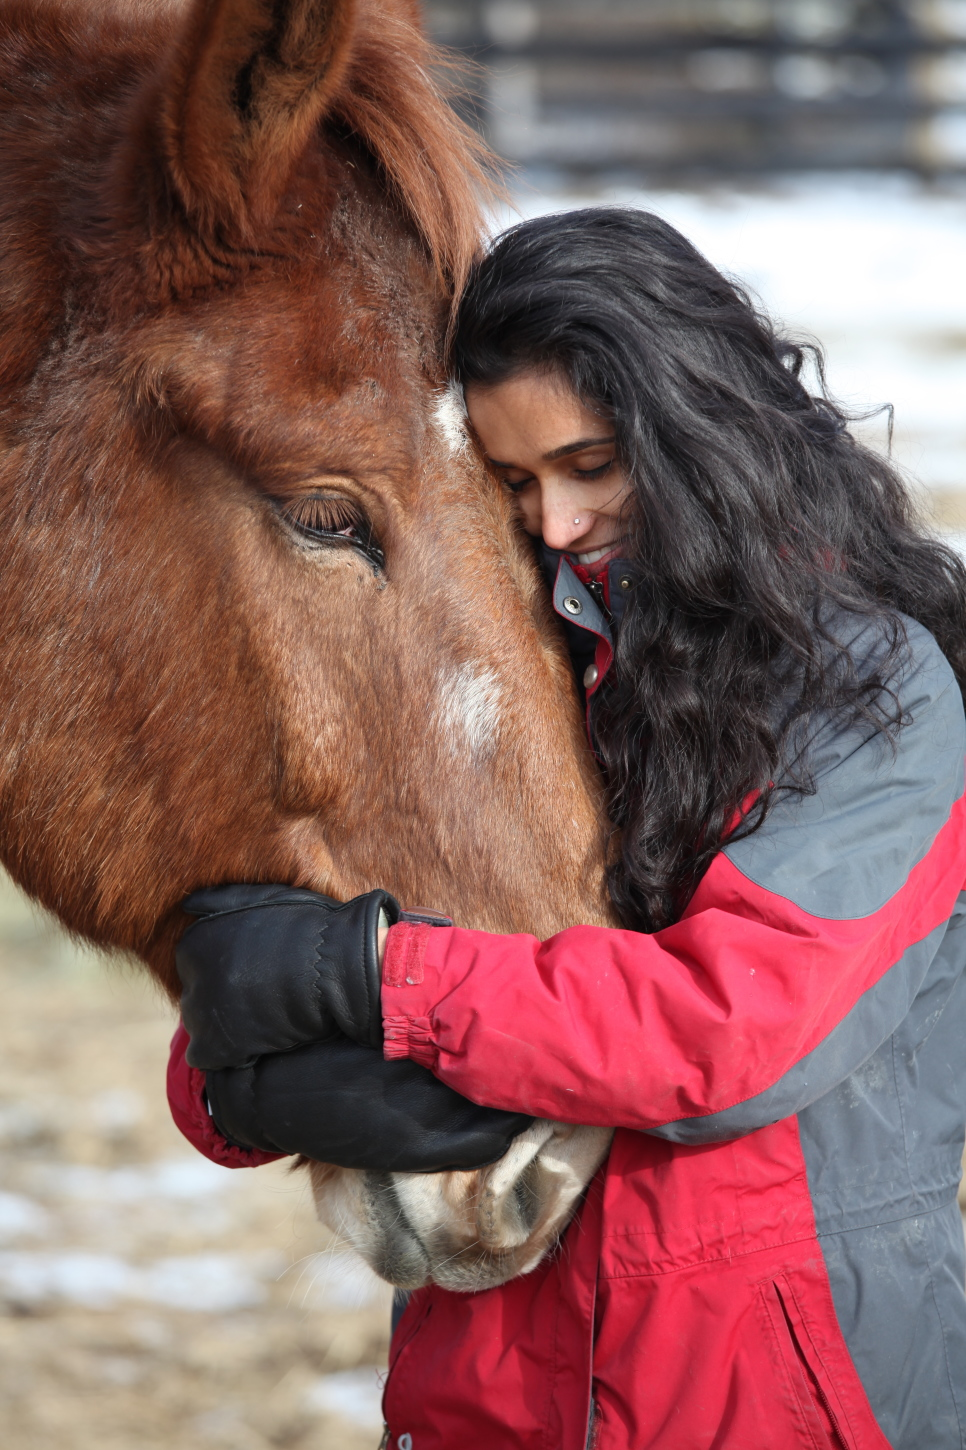 Woman embracing a horse